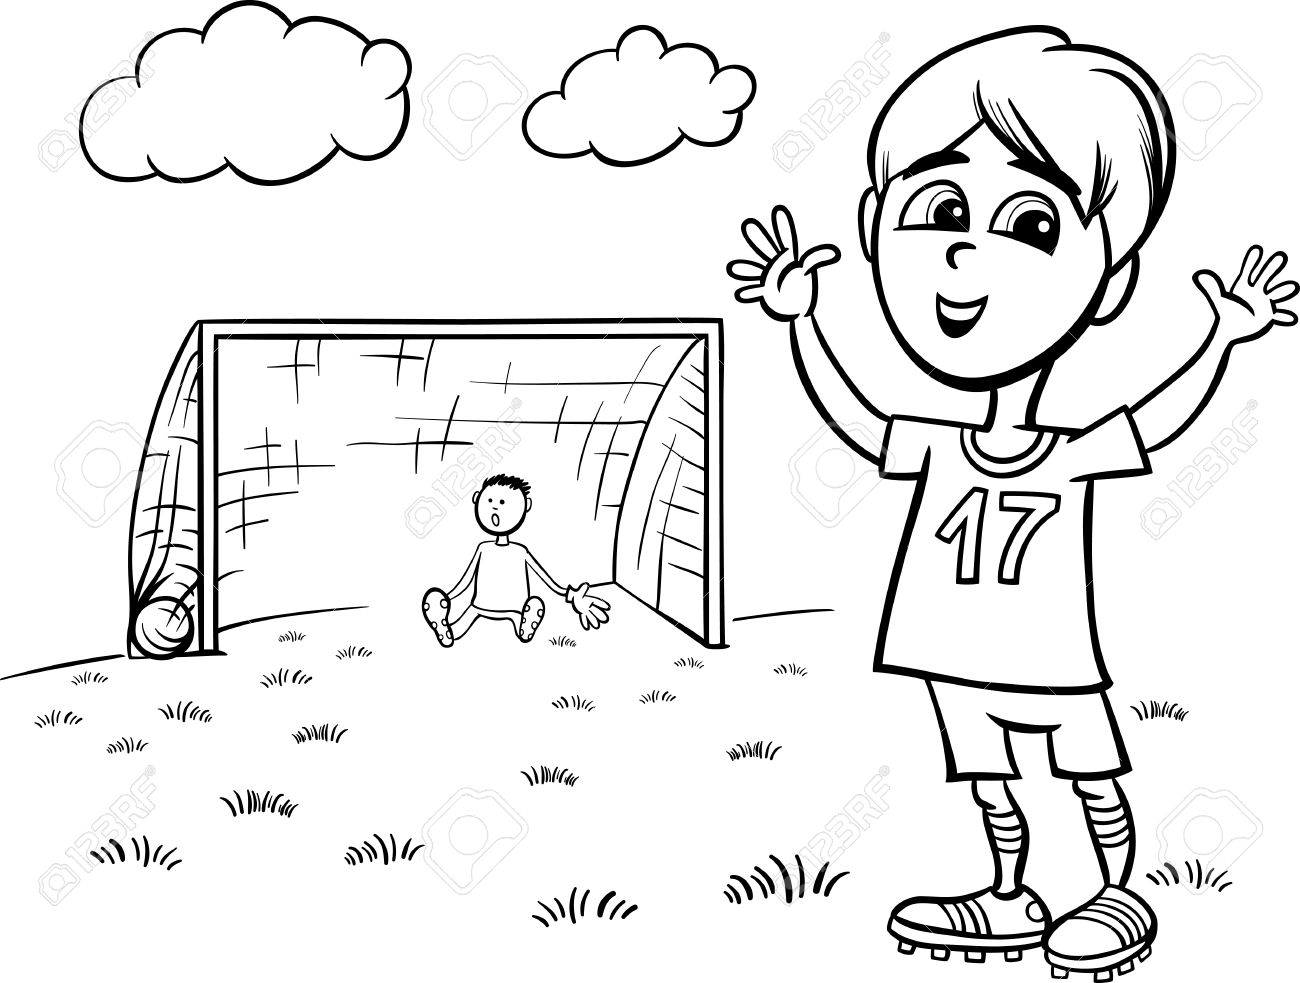 black and white cartoon illustration of cute boy playing football